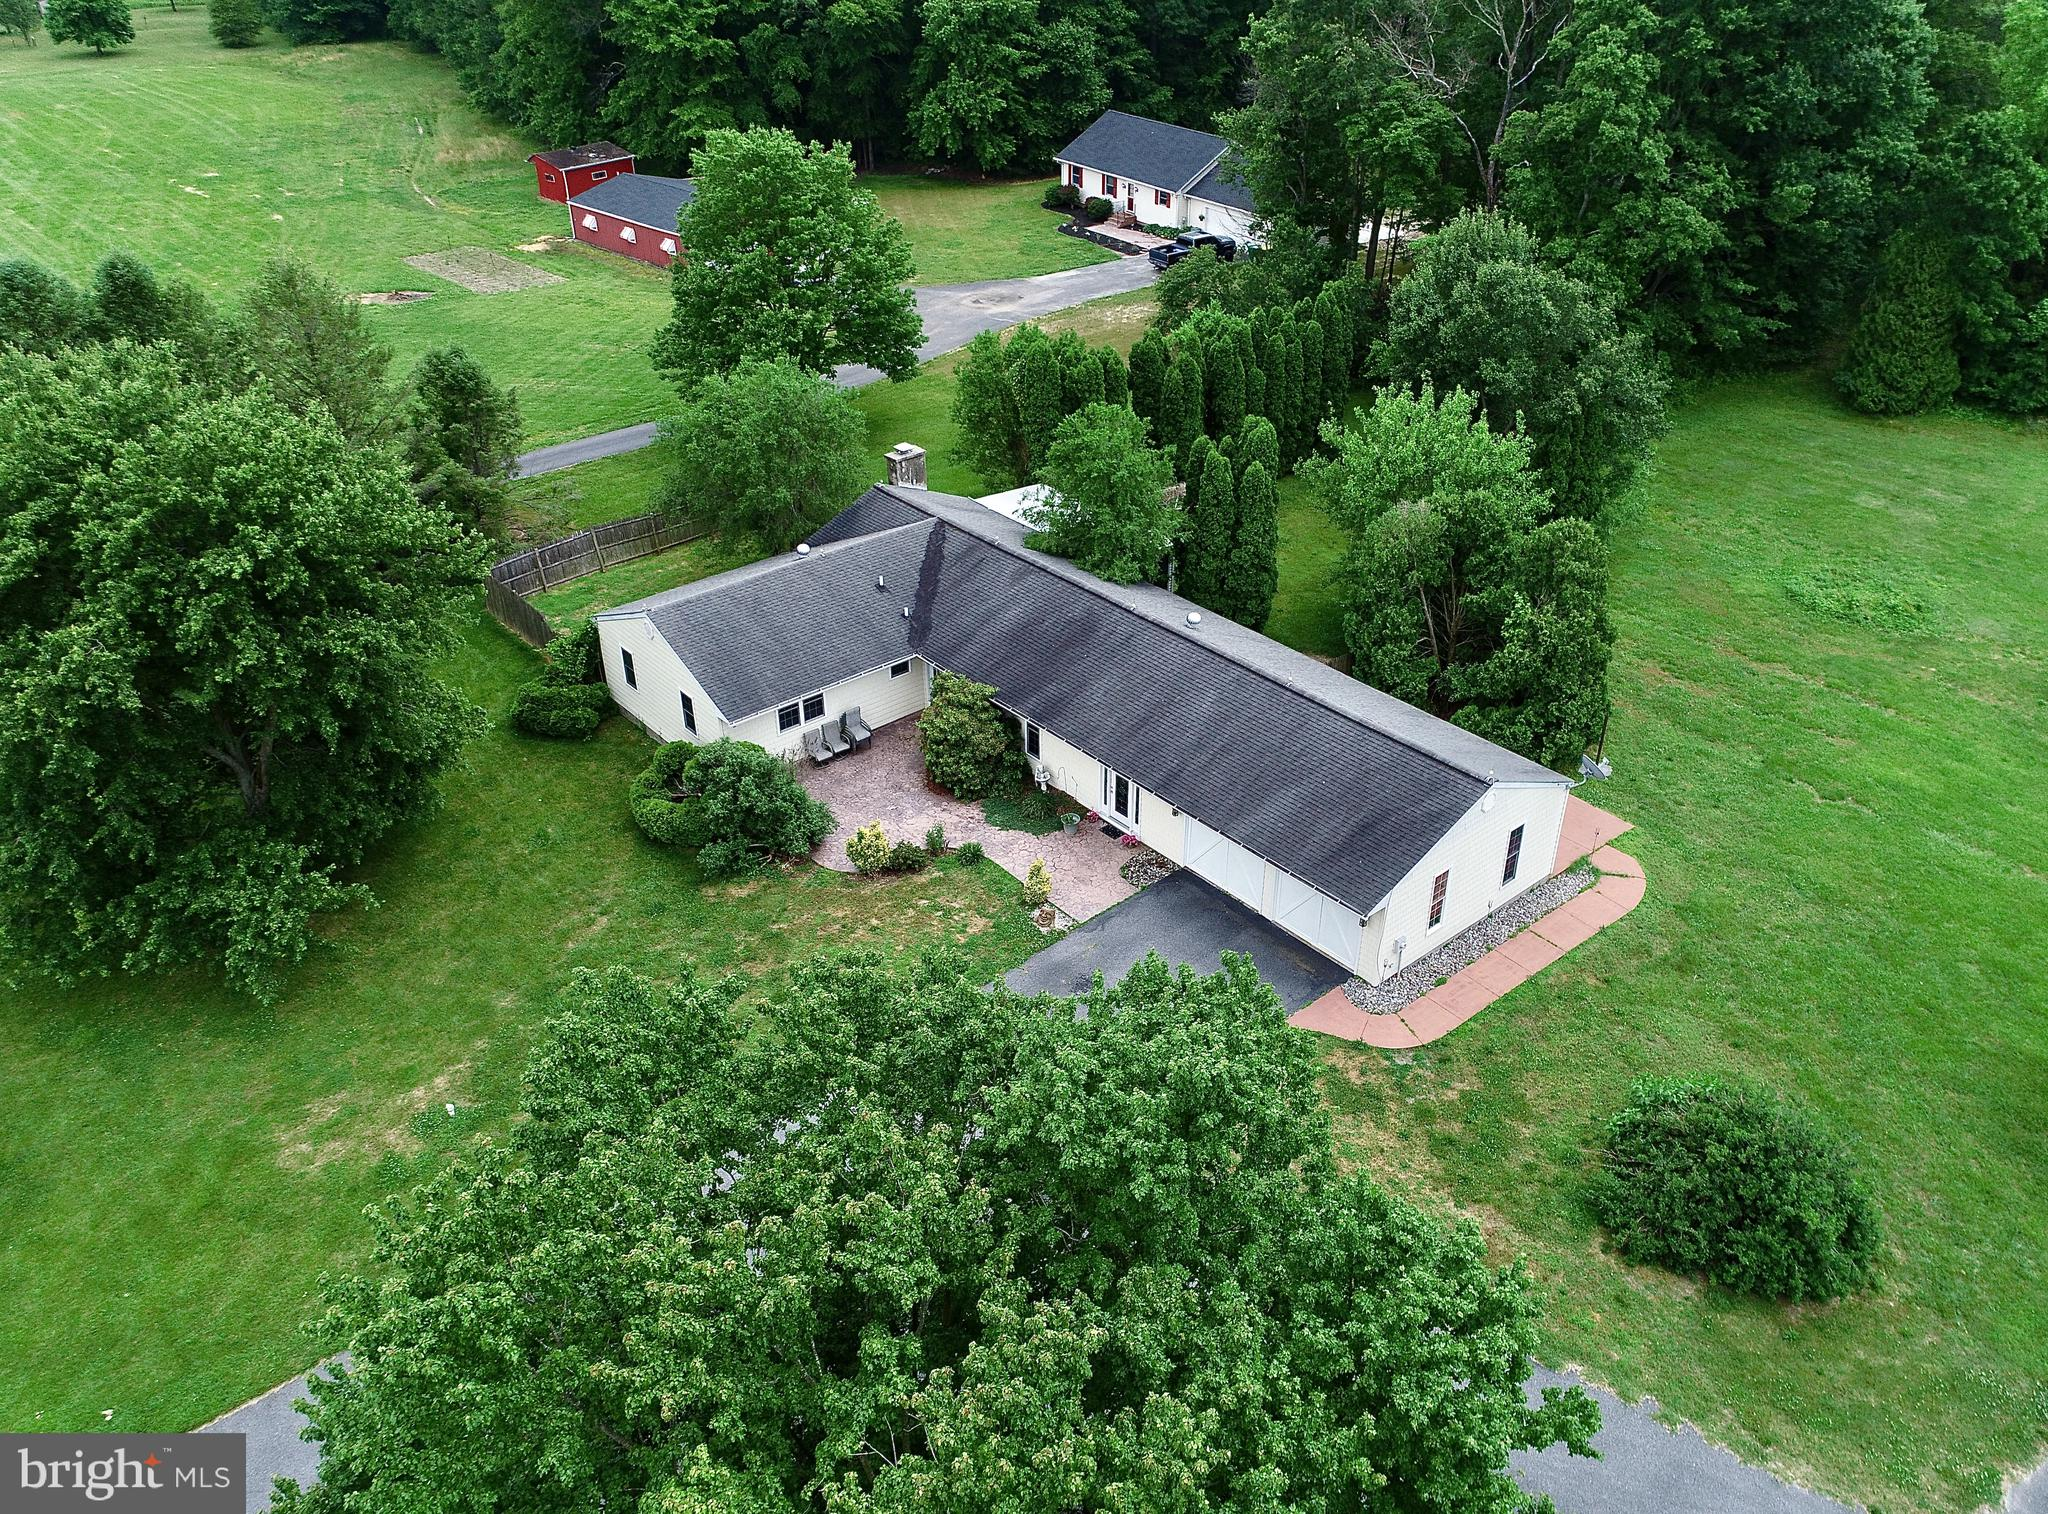 Visit this home virtually: http://www.vht.com/434090315/IDXS - This is the unique opportunity you have been waiting for! Single story living in this 3 bedroom, 2 full bath ranch home on 10 acres with over 200k in upgrades! Bring your horses, four wheelers, hunting stand, row boat and fishing pole to enjoy all that this home and 4 wooded acres, several cleared acres plus beautiful pond with lily pads has to offer. Tile foyer entry, updated kitchen including new cabinets with crown molding, beautiful granite countertops, double wall oven and cooktop and tile flooring. Spacious family room with bar and fresh carpet, large dining room and living room with tile flooring, brick wood burning fireplace in the living room, enclosed porch off of the living room. Hall bath with shower and Jacuzzi tub, master suite with private bath. New well in 2014, 20' X 30' pole barn, the possibilities here are endless! Hurry and make your appointment today!